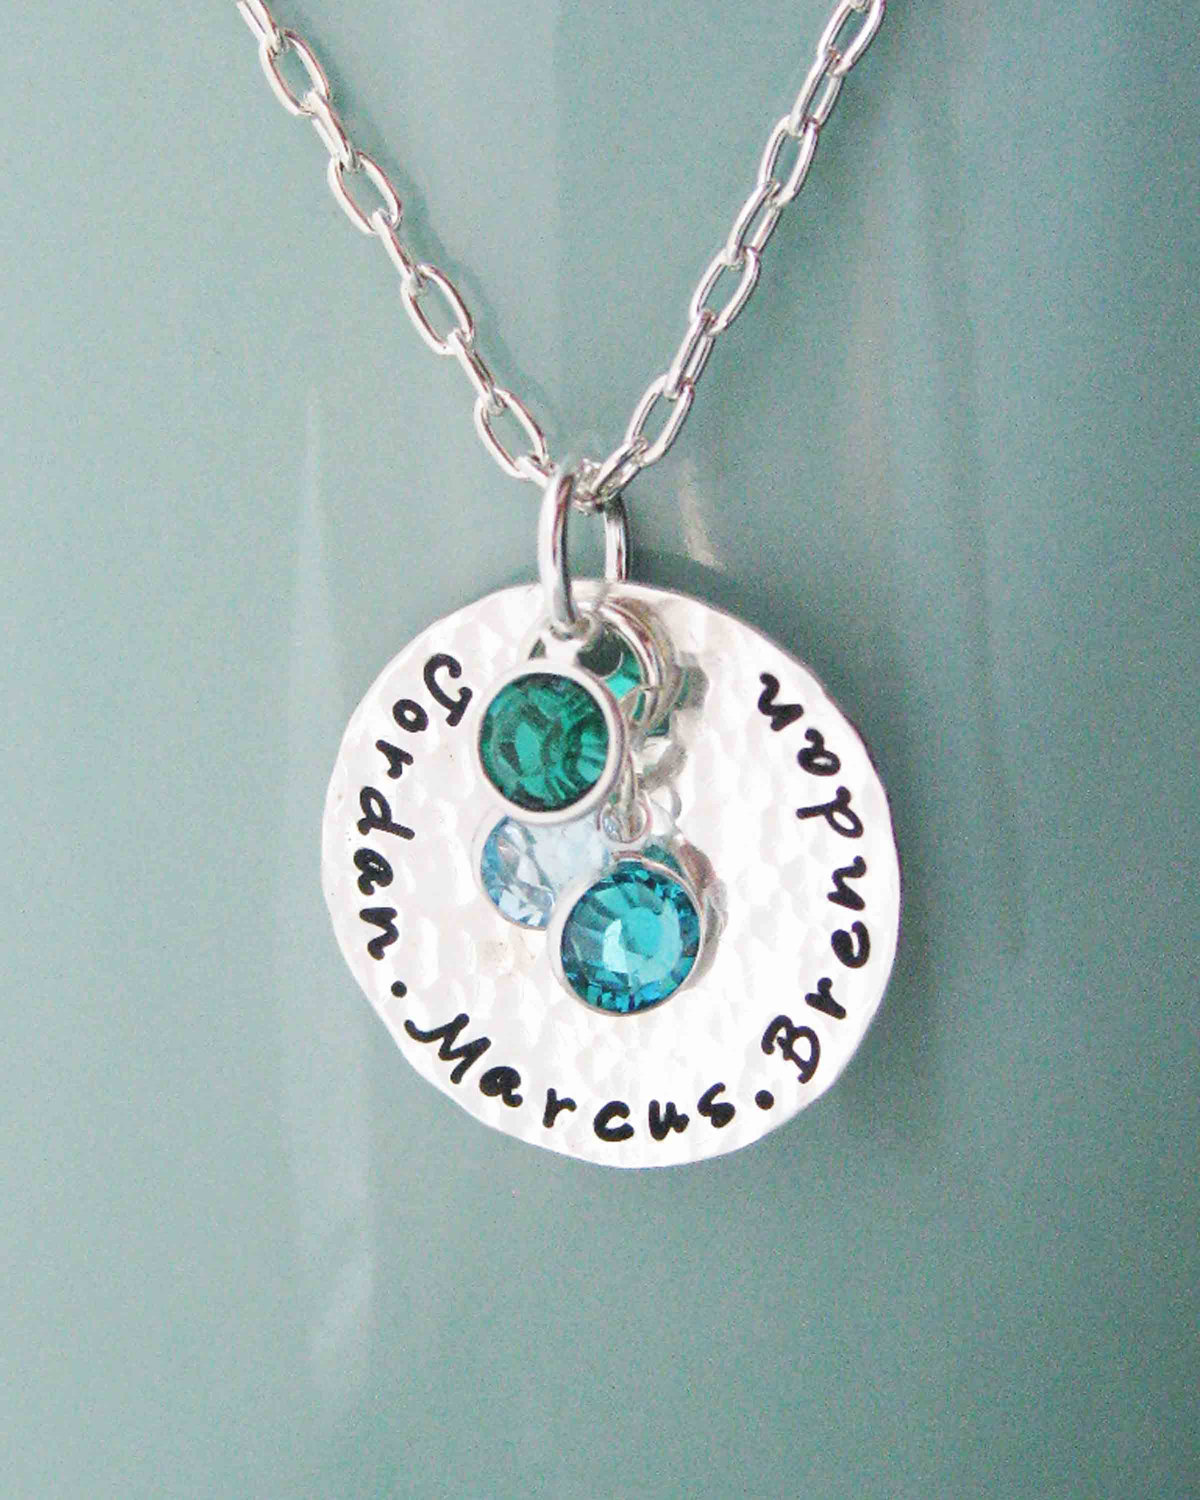 Mothers Necklaces With Names And Birthstones